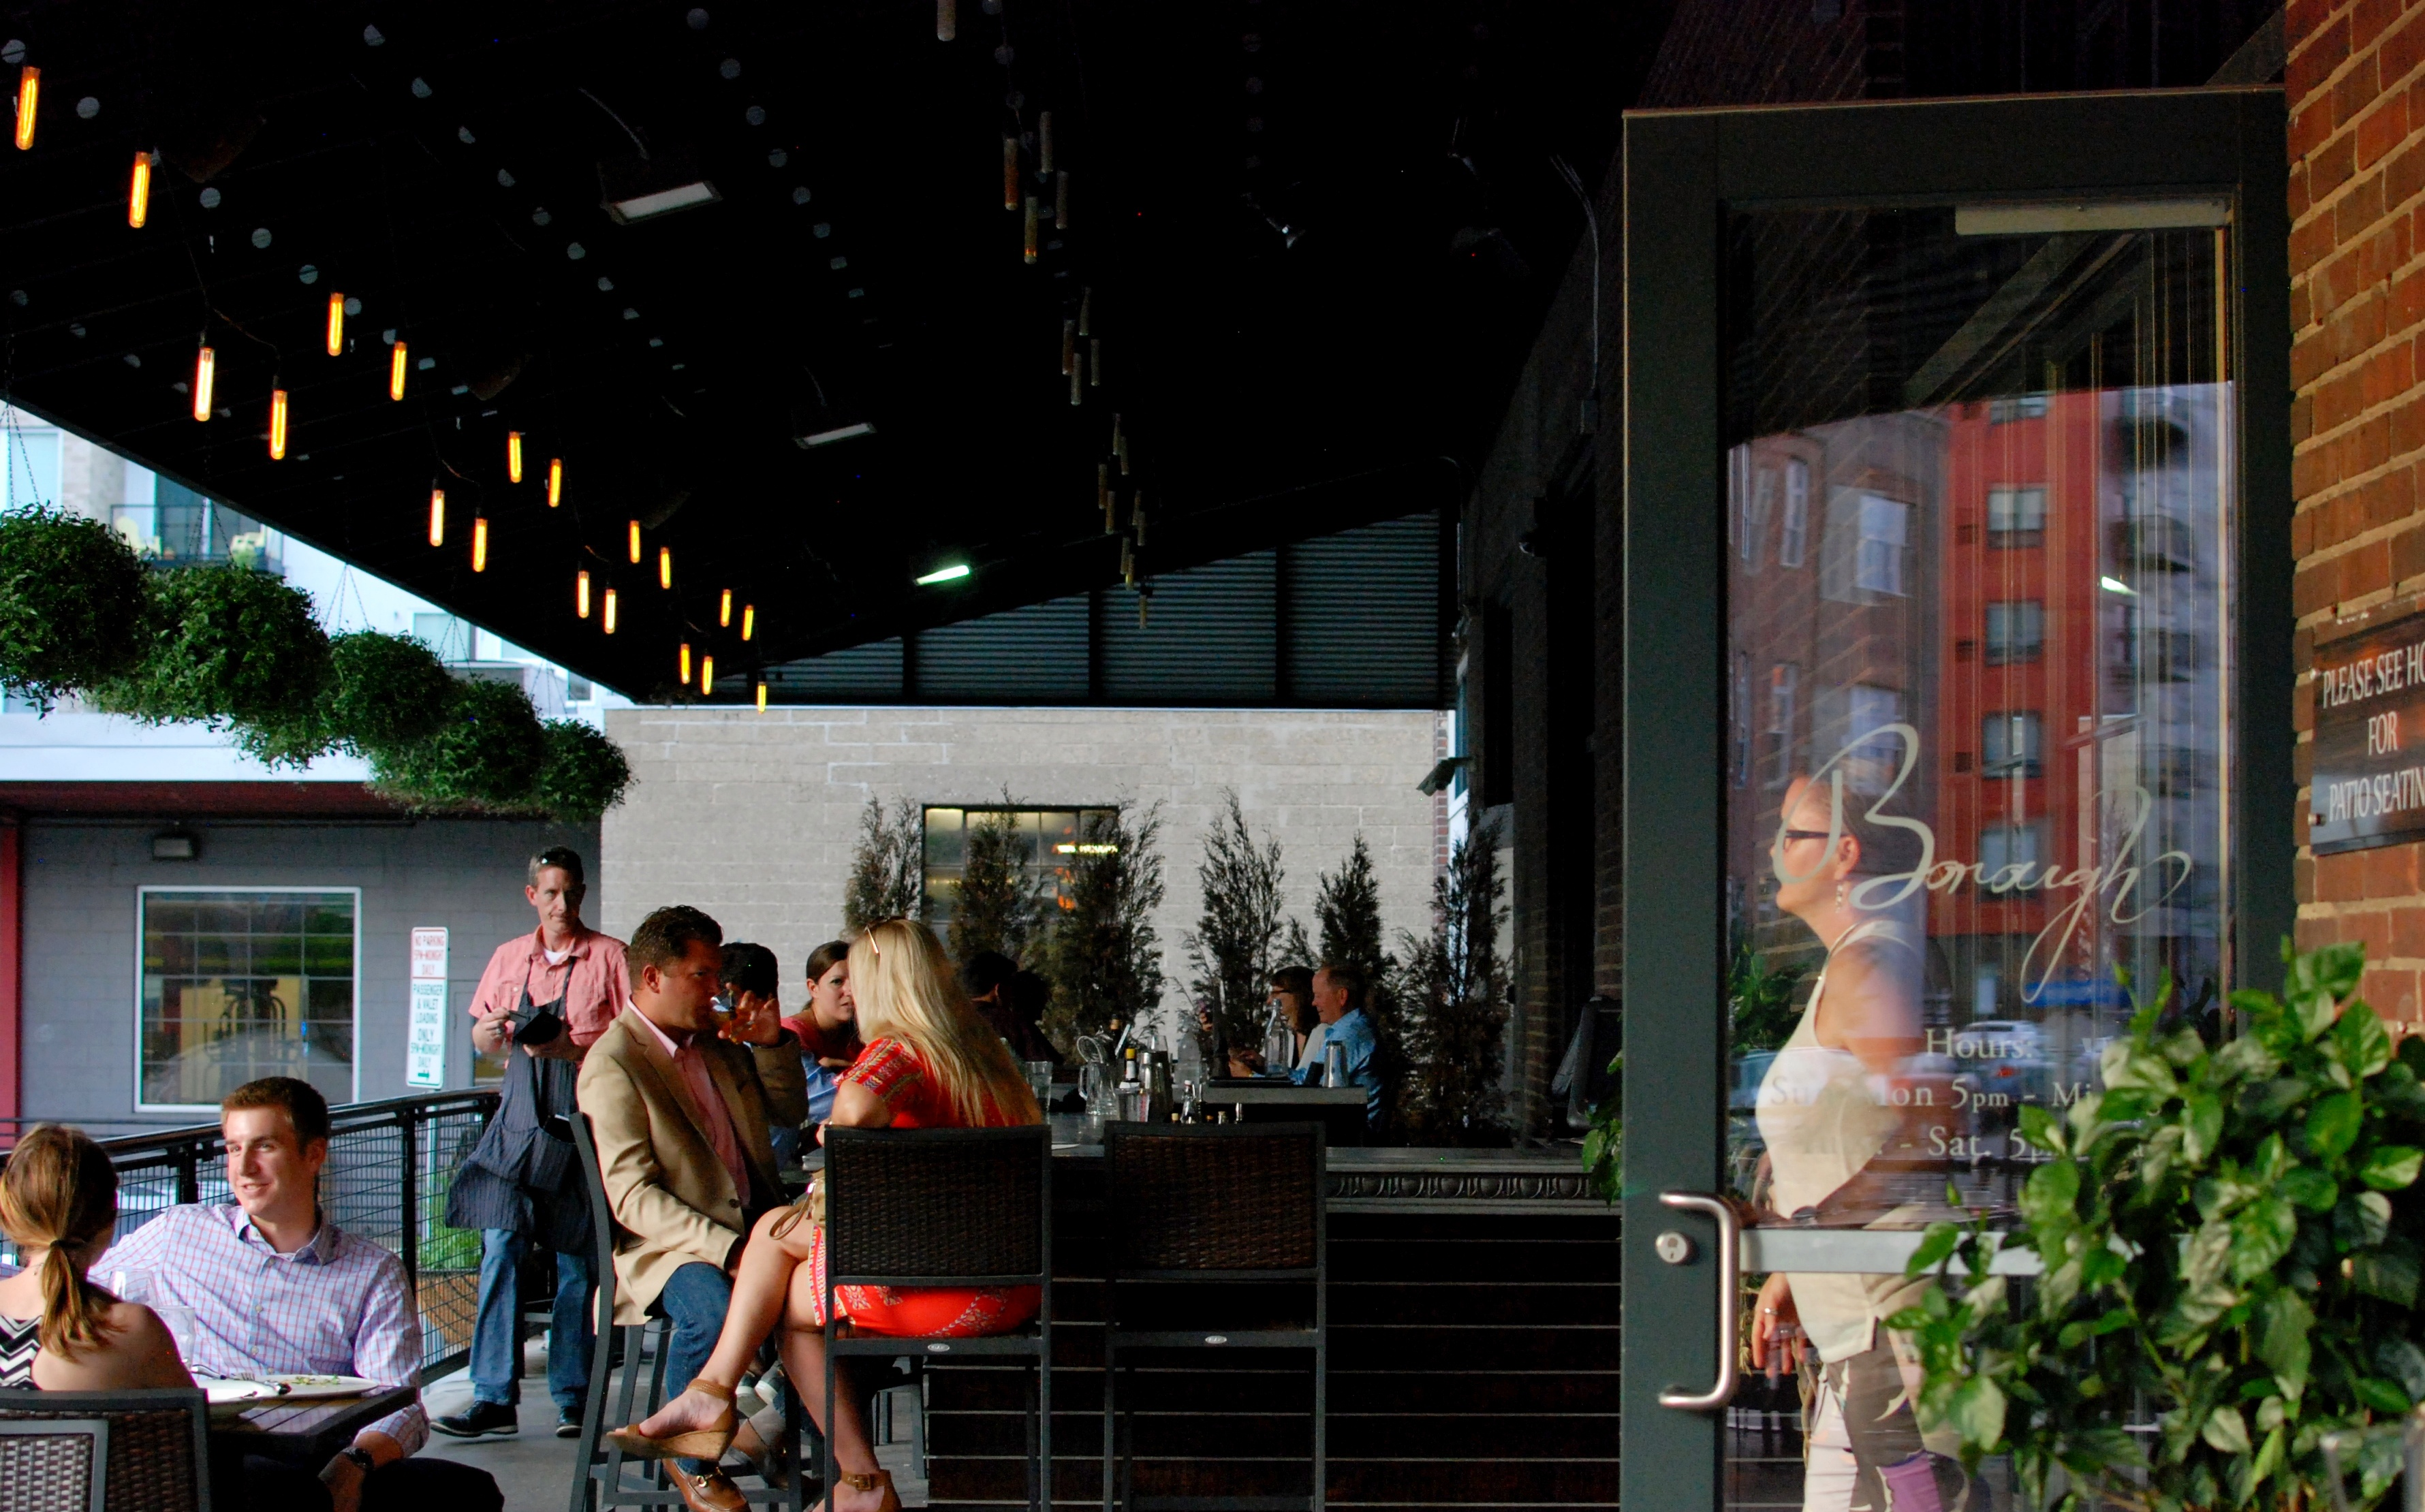 Outdoor dining in the twin cities 10 great spots eater for Z cucina menu